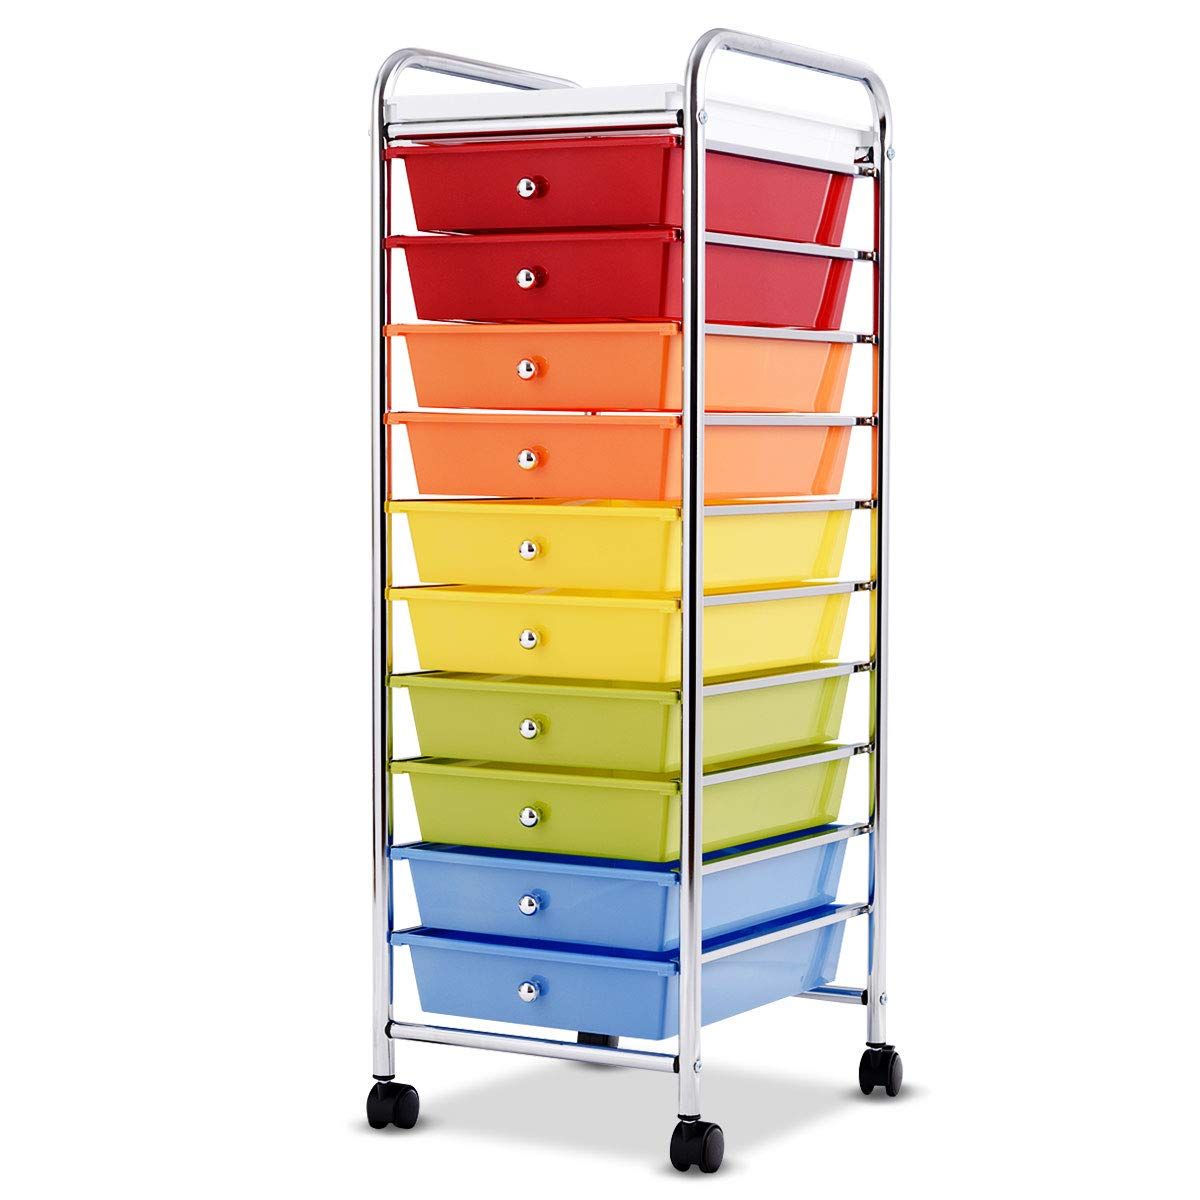 Giantex 10-Drawer Organizer Cart, Pearlescent Multi-Color Mobile Utility Trolley Cart Home Office School Scrapbook Paper Organizer Shelf w/Removable Top Tray, Multicolor Pearlized